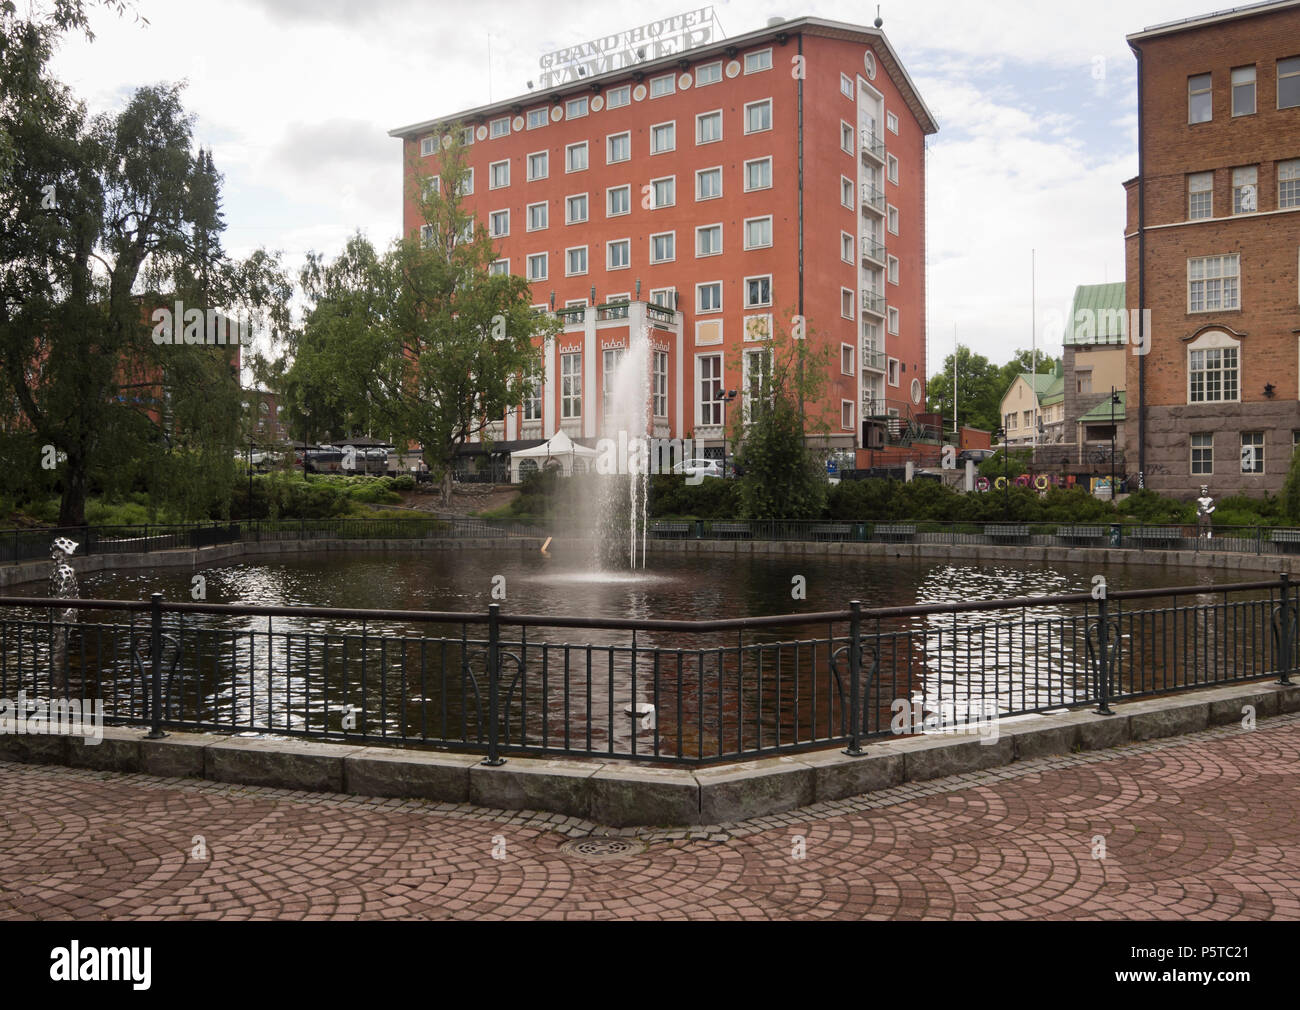 City park with fountain in front of the Radisson Blu Grand Hotel Tammer, in Tampere Finland - Stock Image